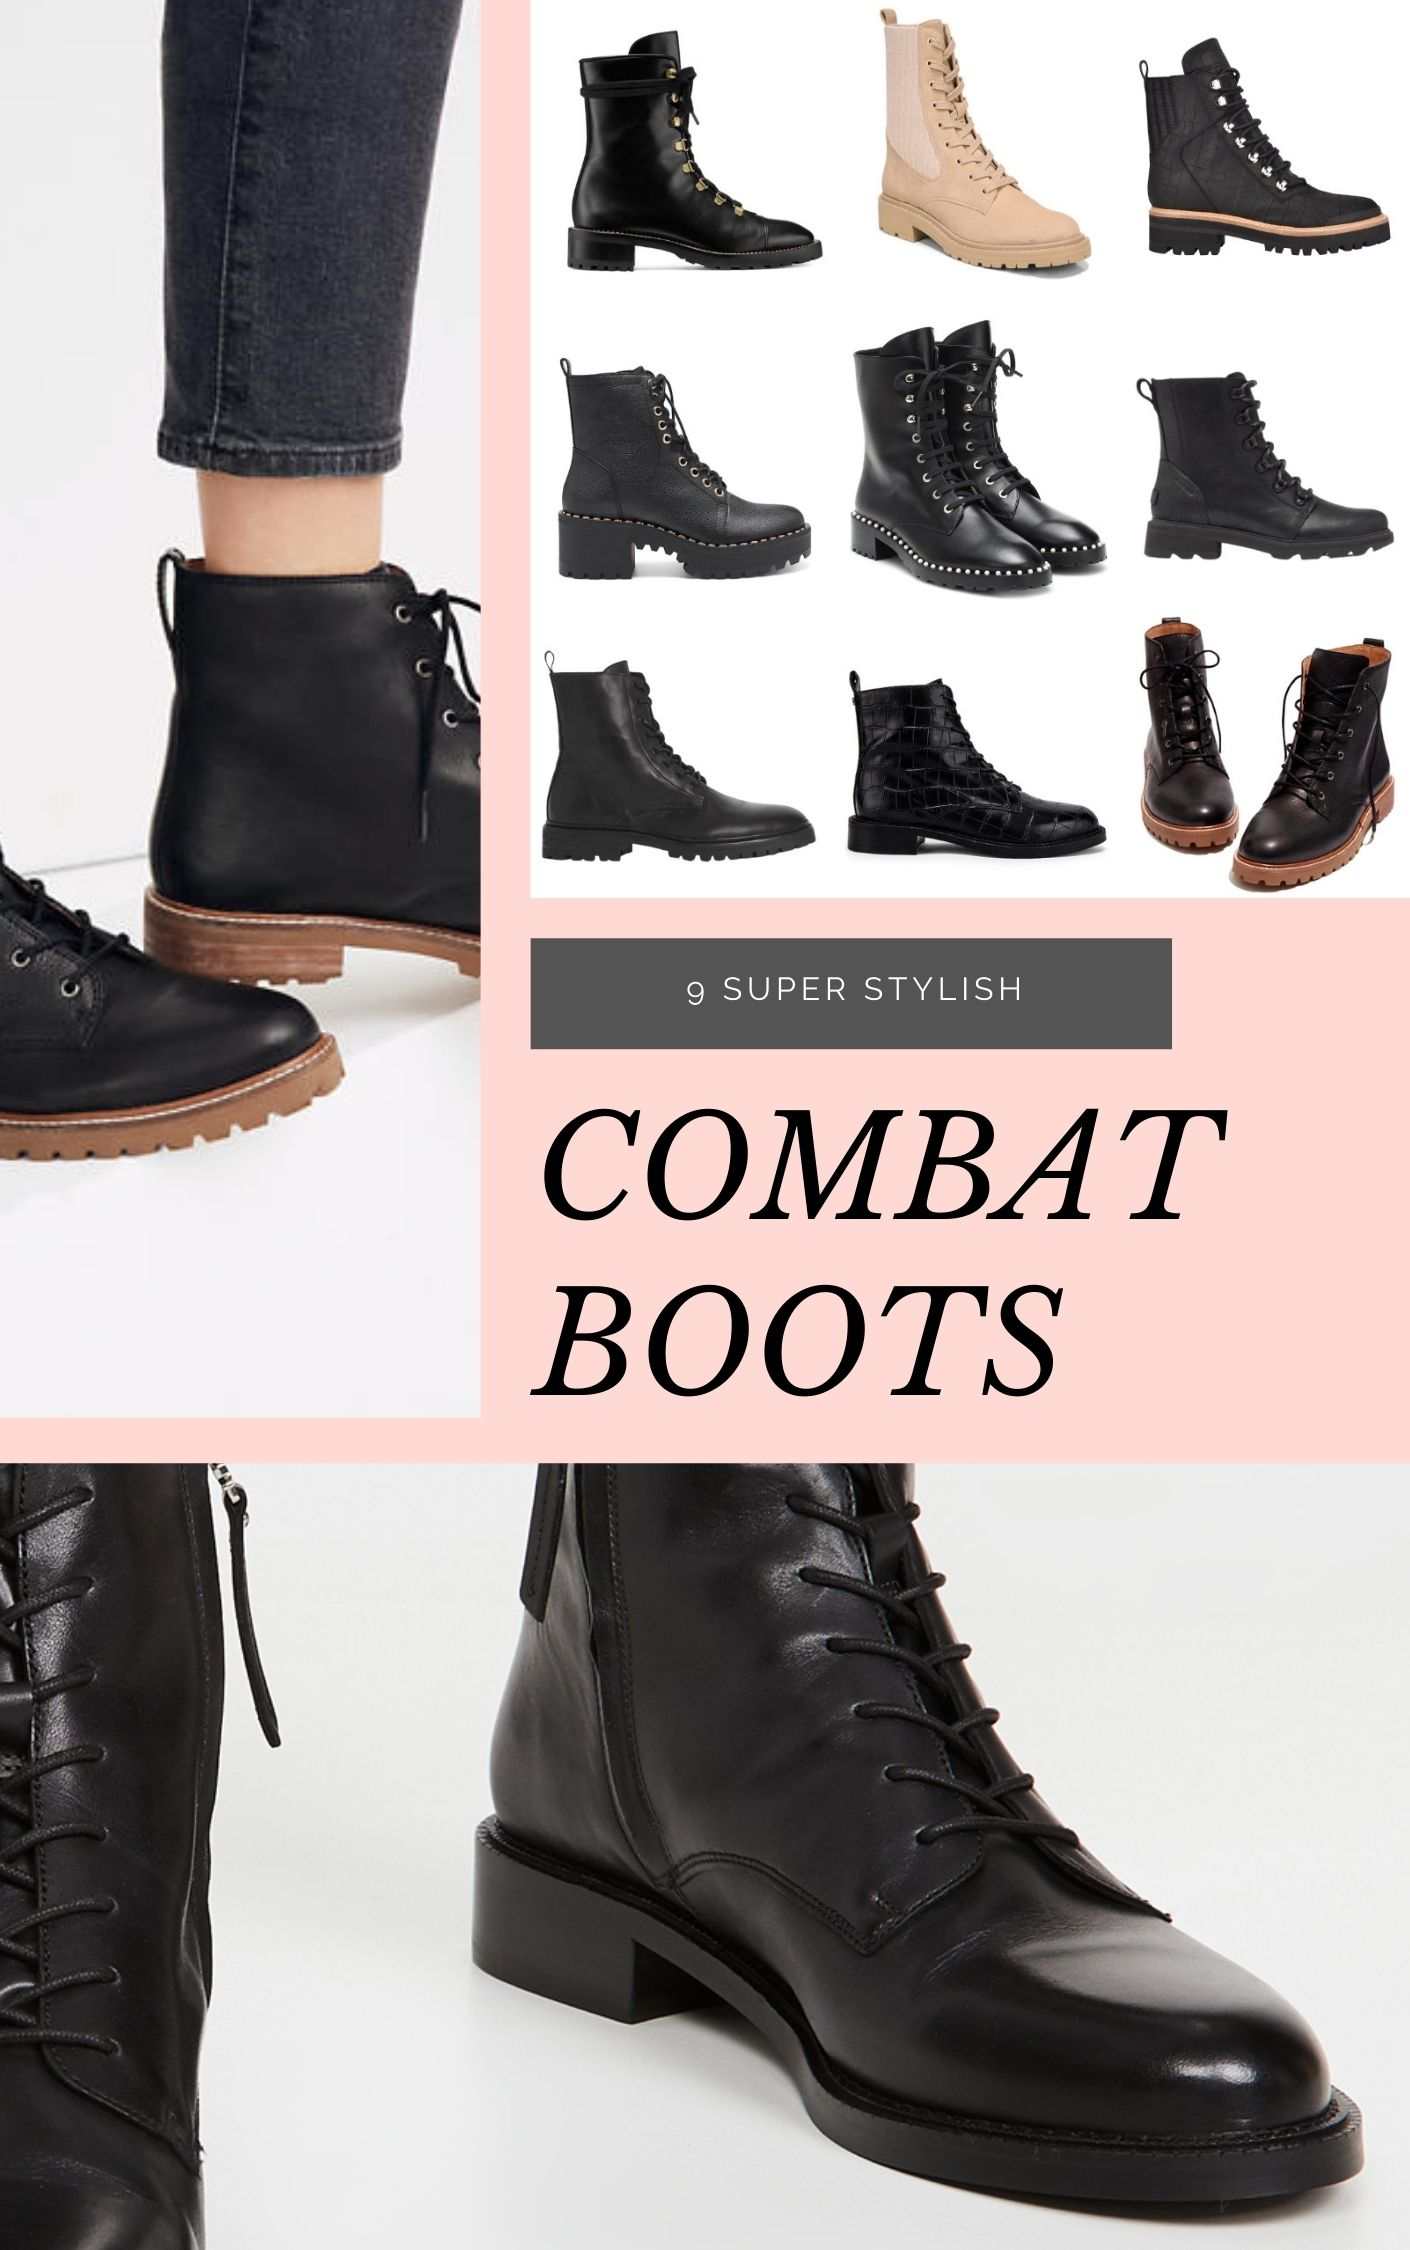 9 Upgraded and Chic Combat Boots that Will Stand the Test of Time // GLITTERINC.COM